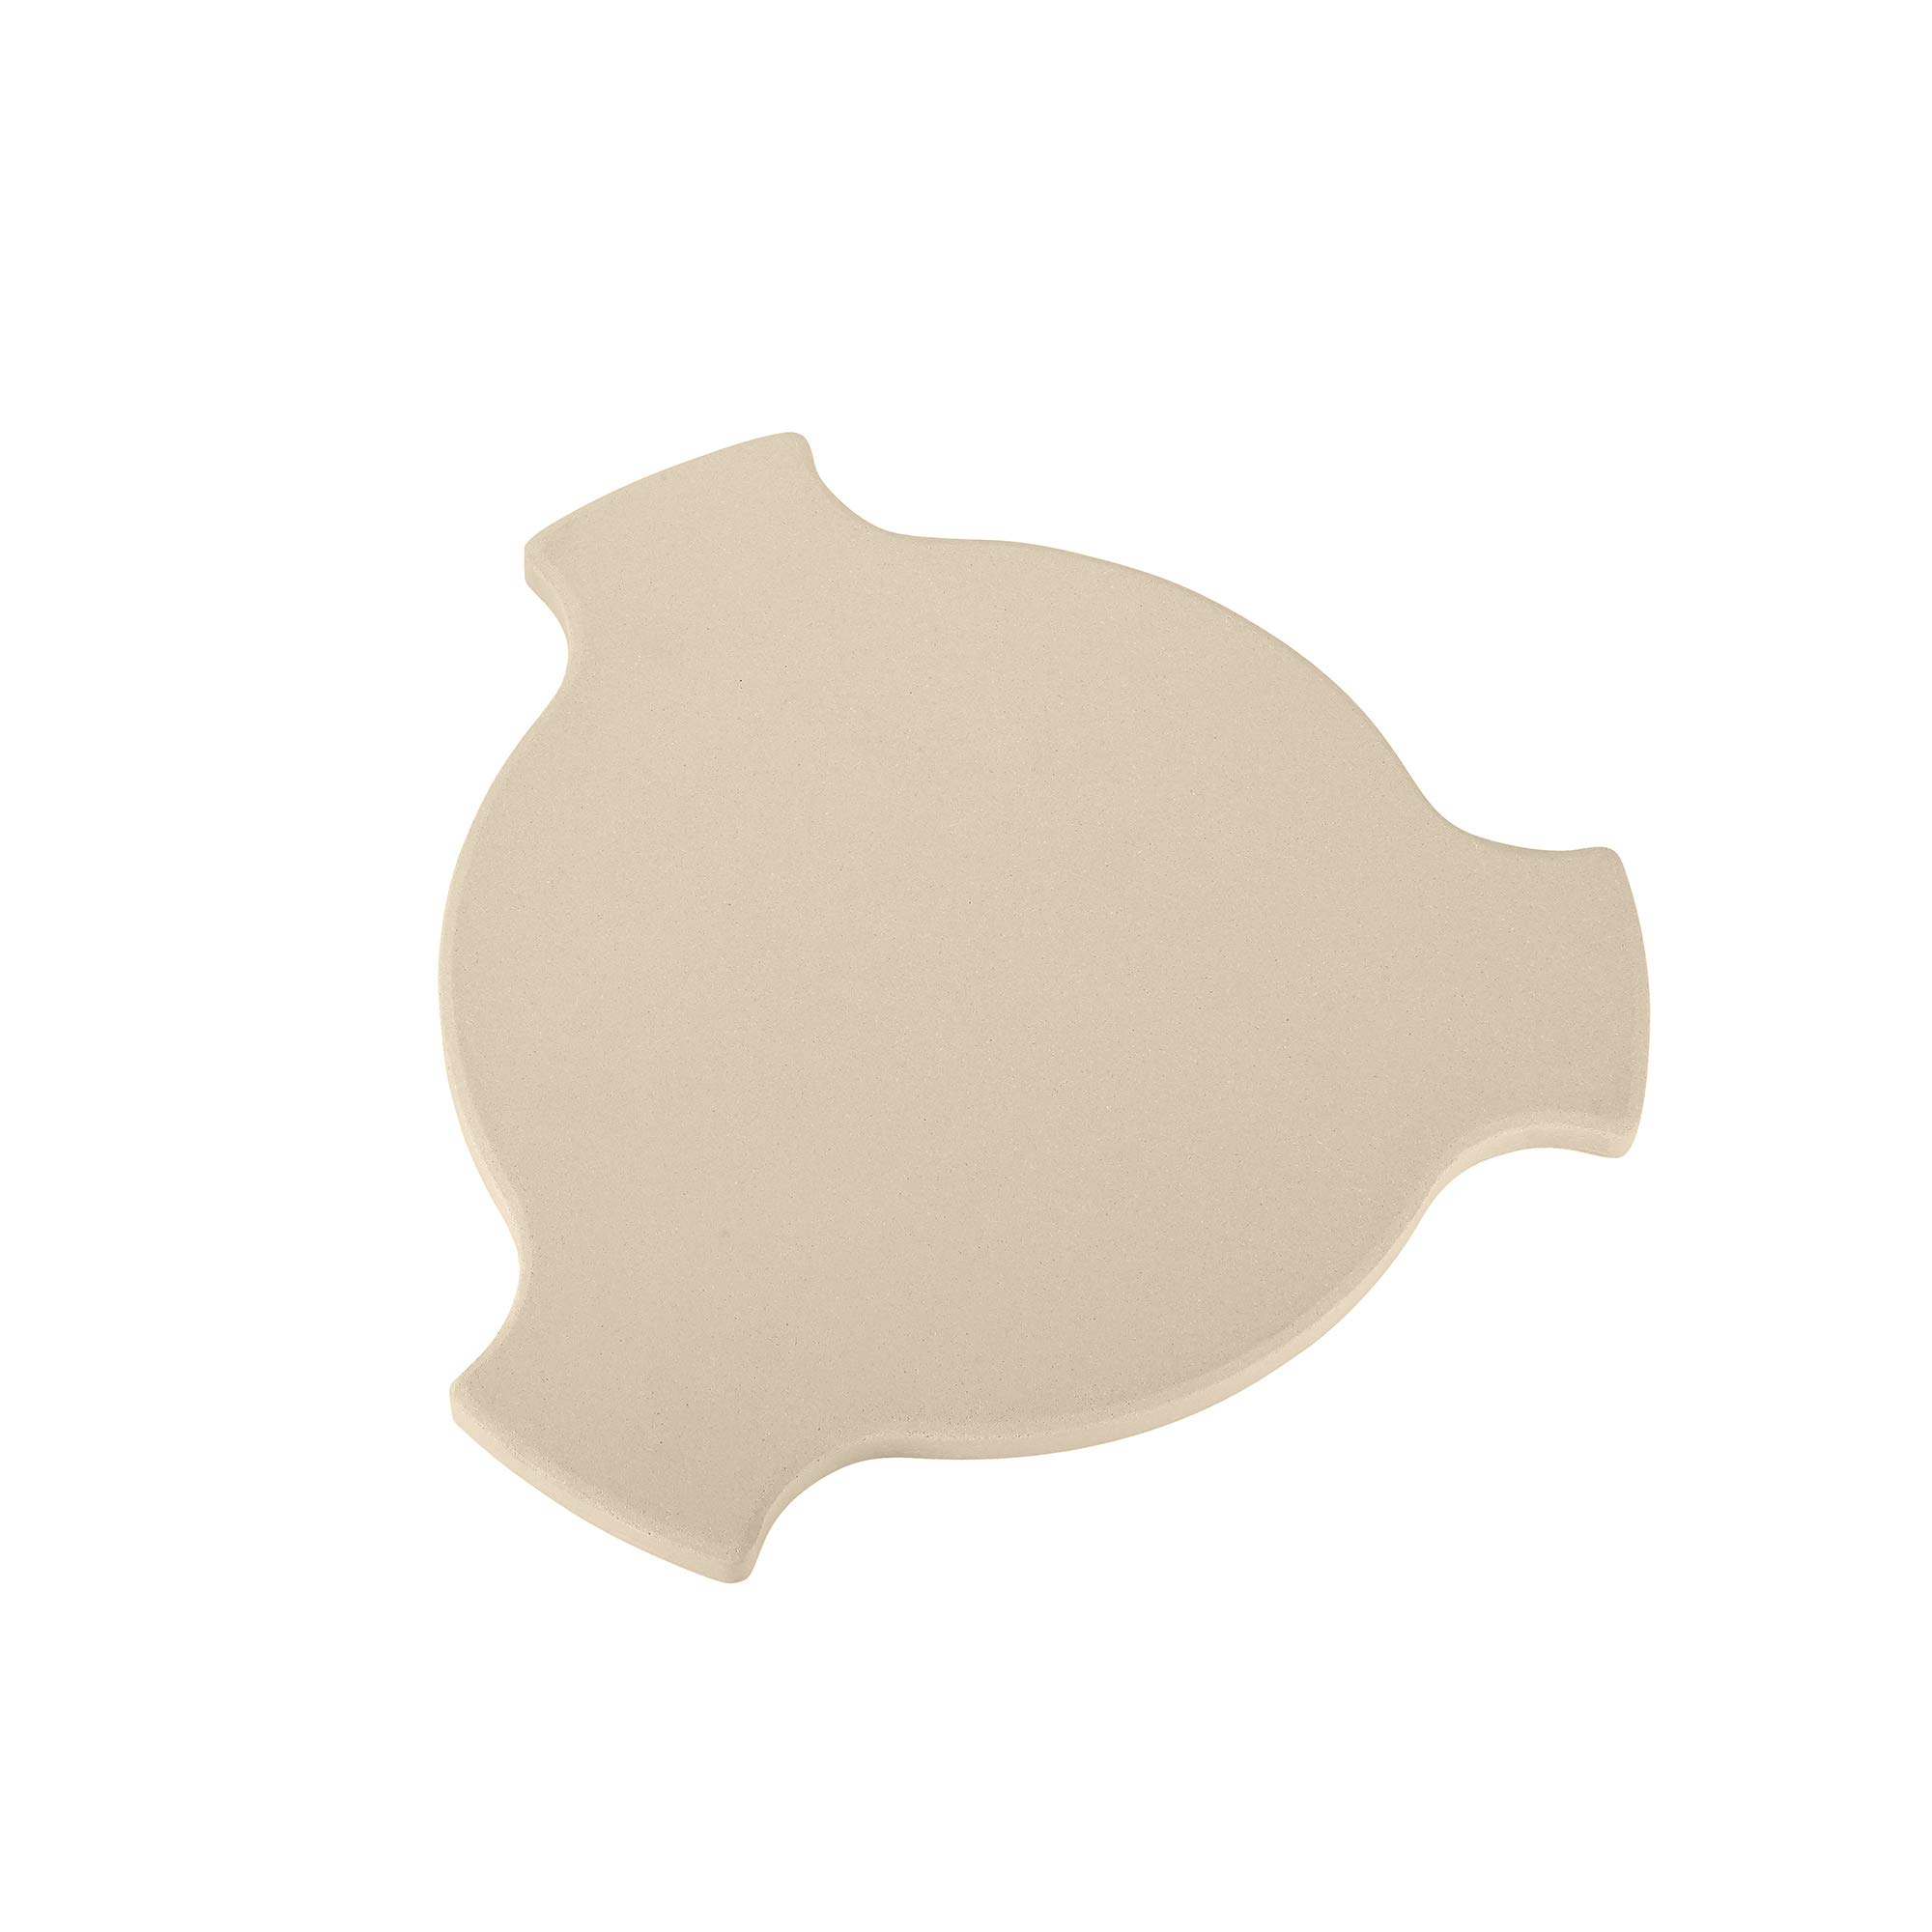 Unicook Heat Deflector Stone 17'', Heavy Duty Ceramic Pizza Stone, Heat Diffuser Plate, Smoking Stone, Compatible for Char-Griller 6201, Fits 20'' AKORN Kamado Grill, Large Big Green Egg and More by UNICOOK